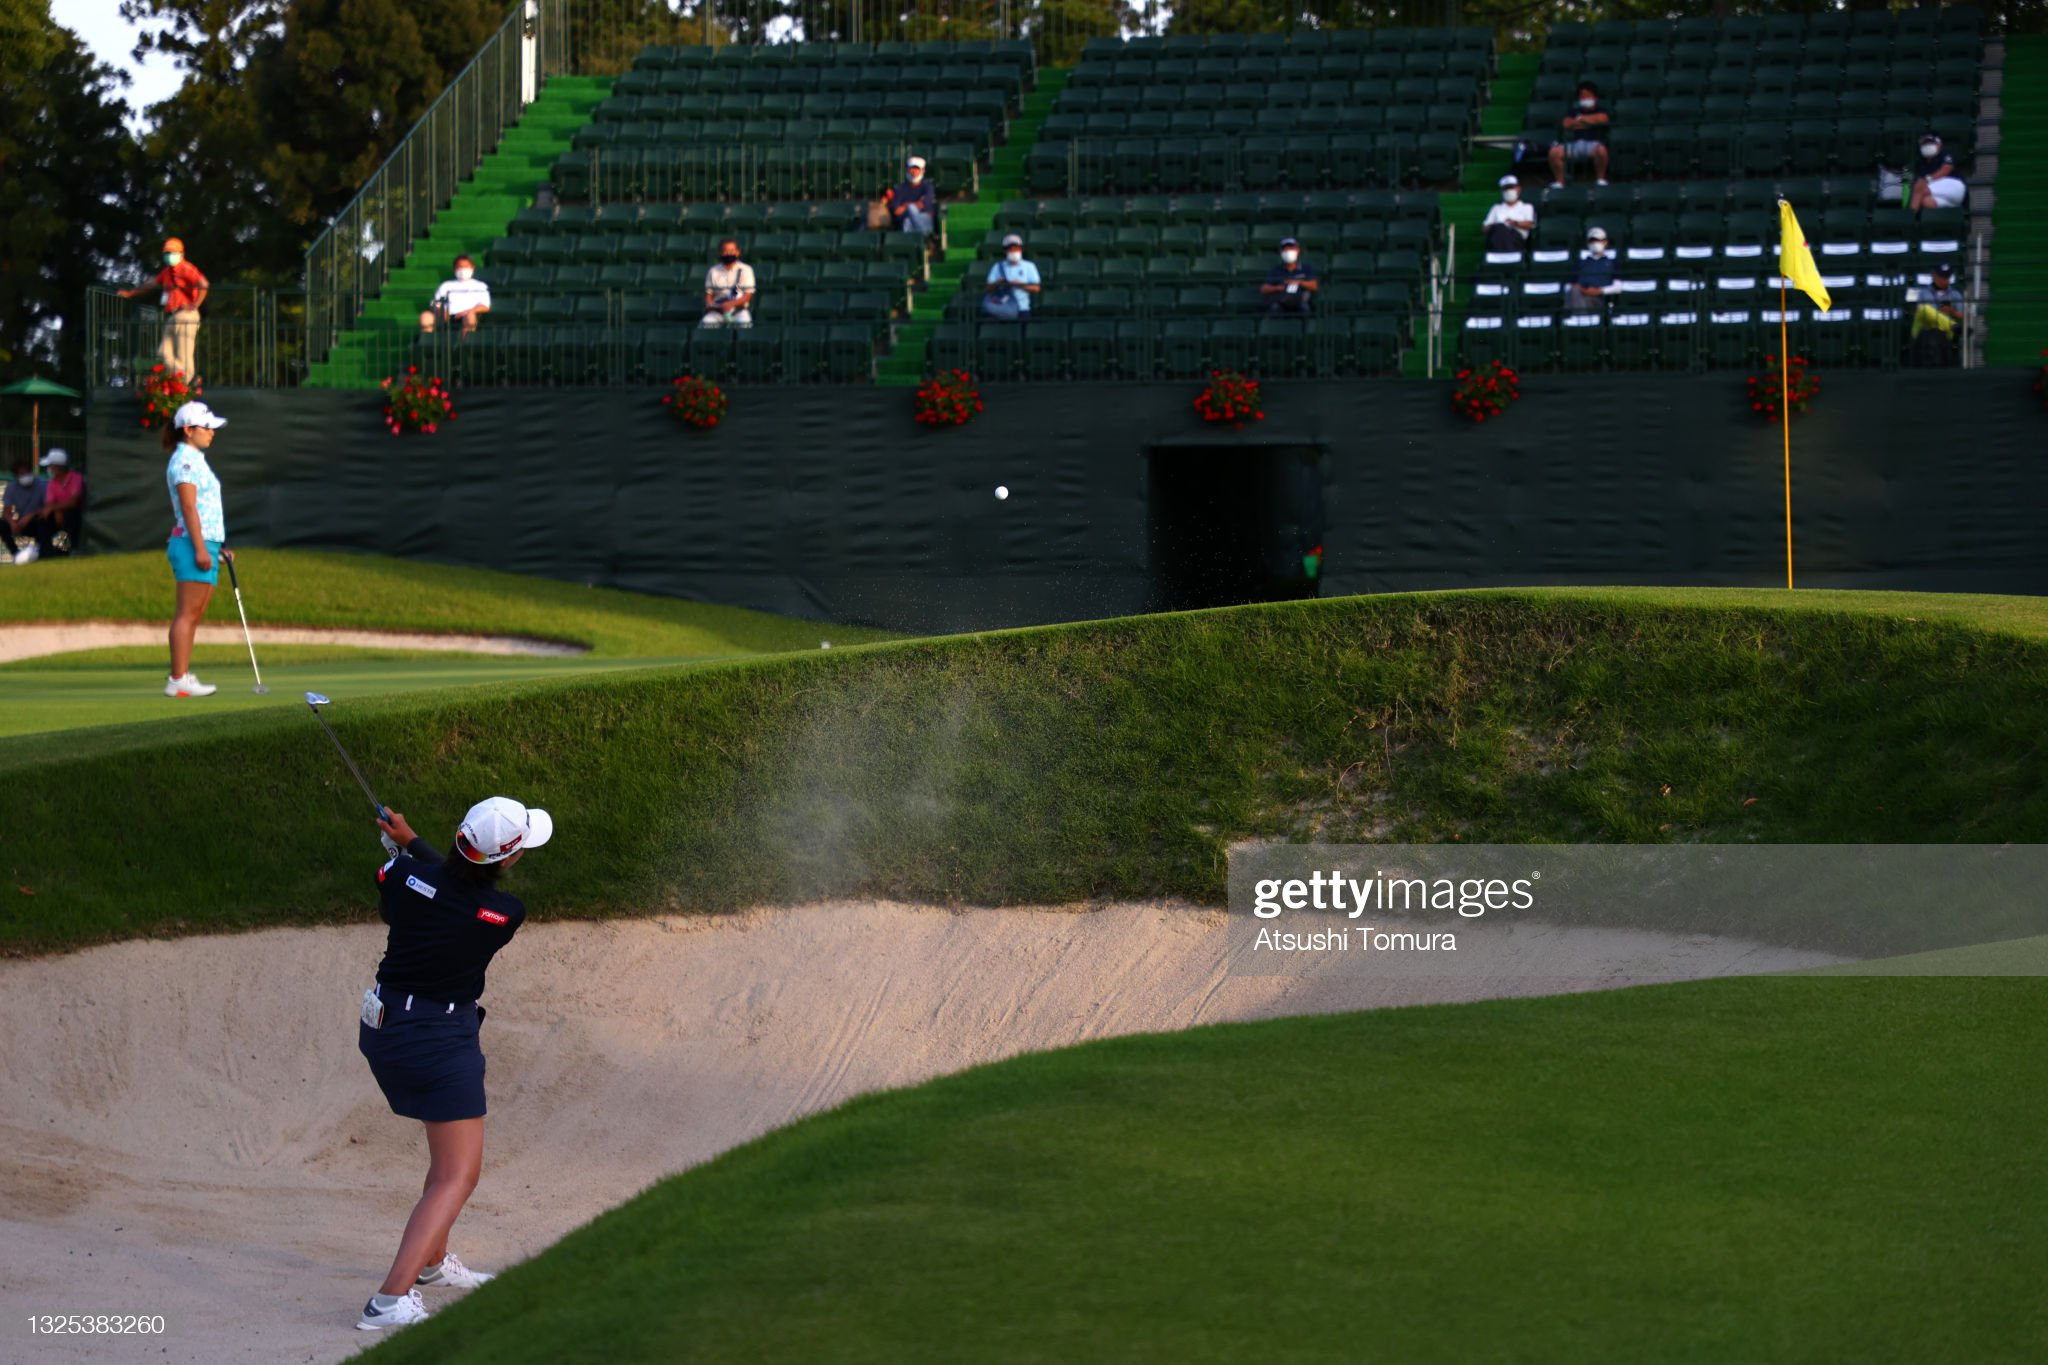 https://media.gettyimages.com/photos/langkul-of-thailand-hits-out-from-a-bunker-on-the-18th-hole-during-picture-id1325383260?s=2048x2048